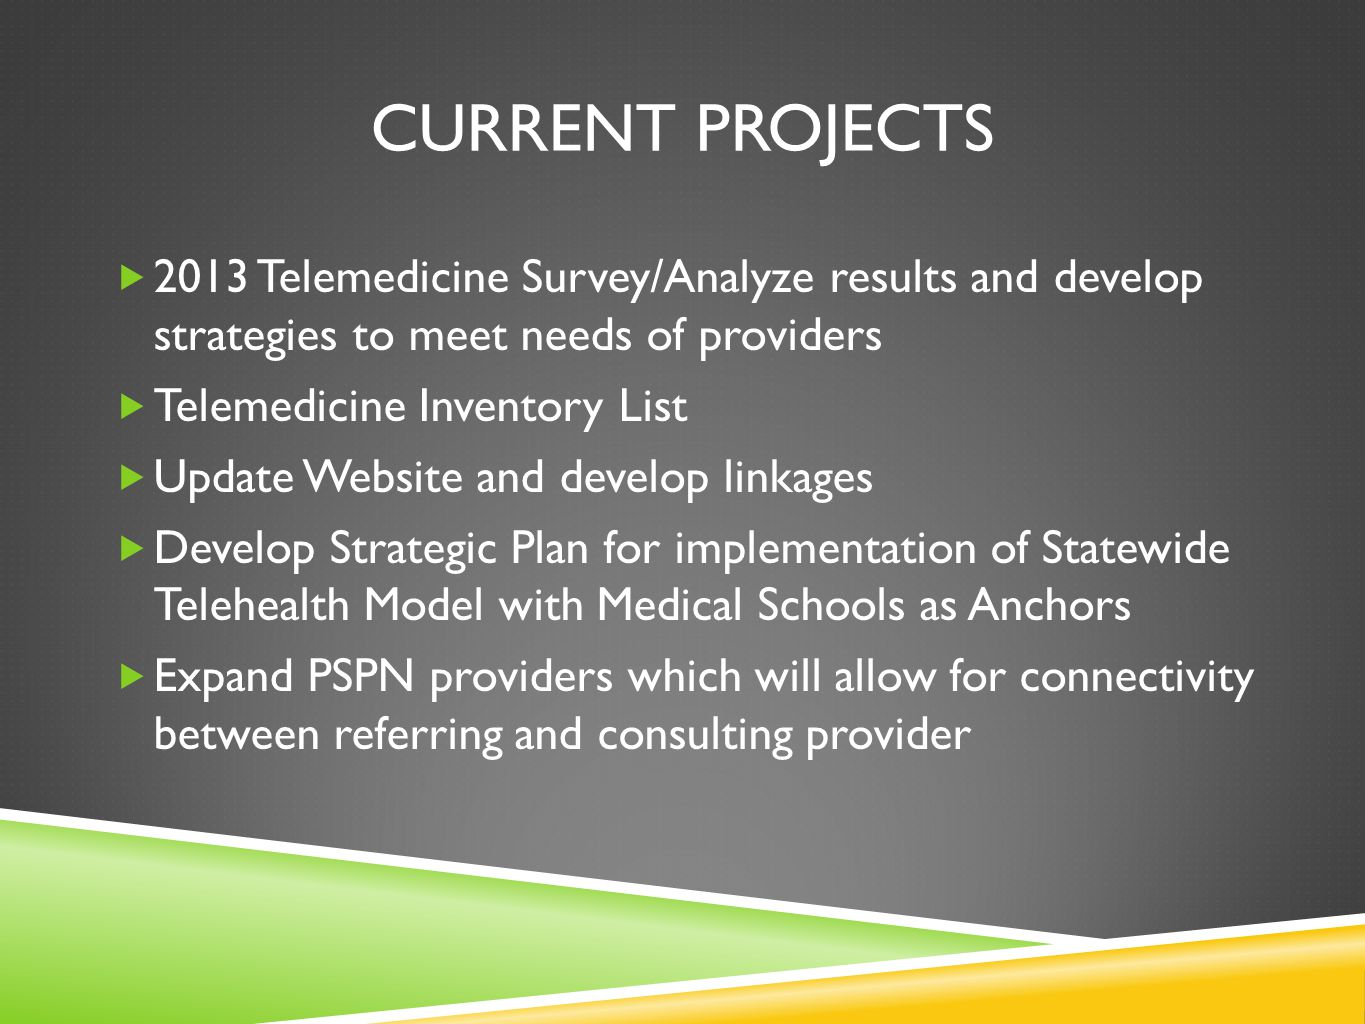 Current projects 2013 Telemedicine Survey/Analyze results and develop strategies to meet needs of providers.